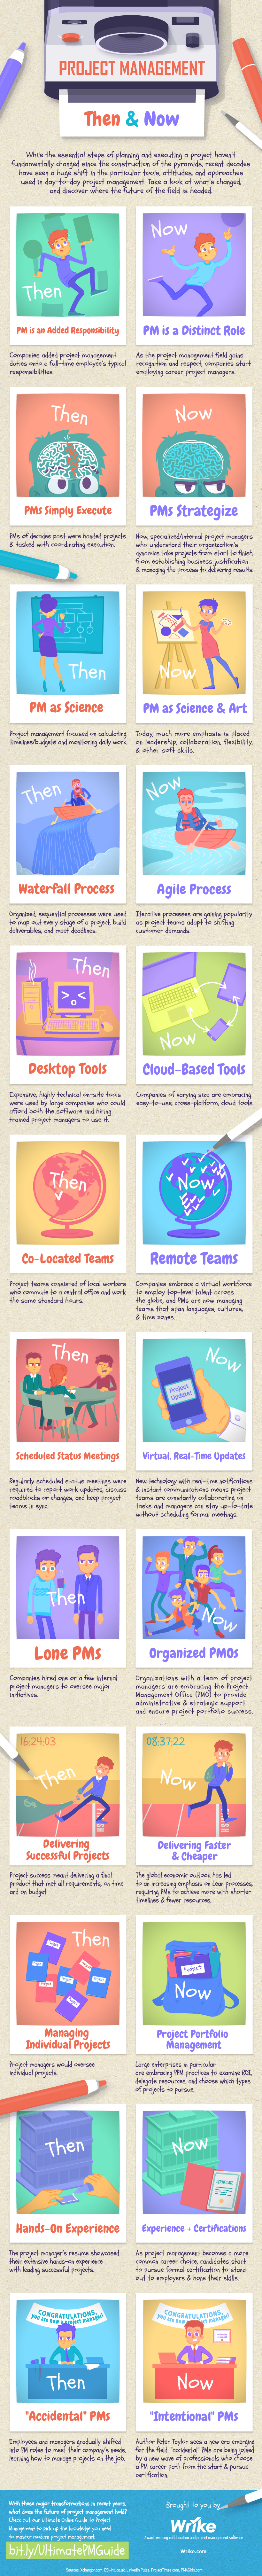 Project Management Then & Now (Infographic)